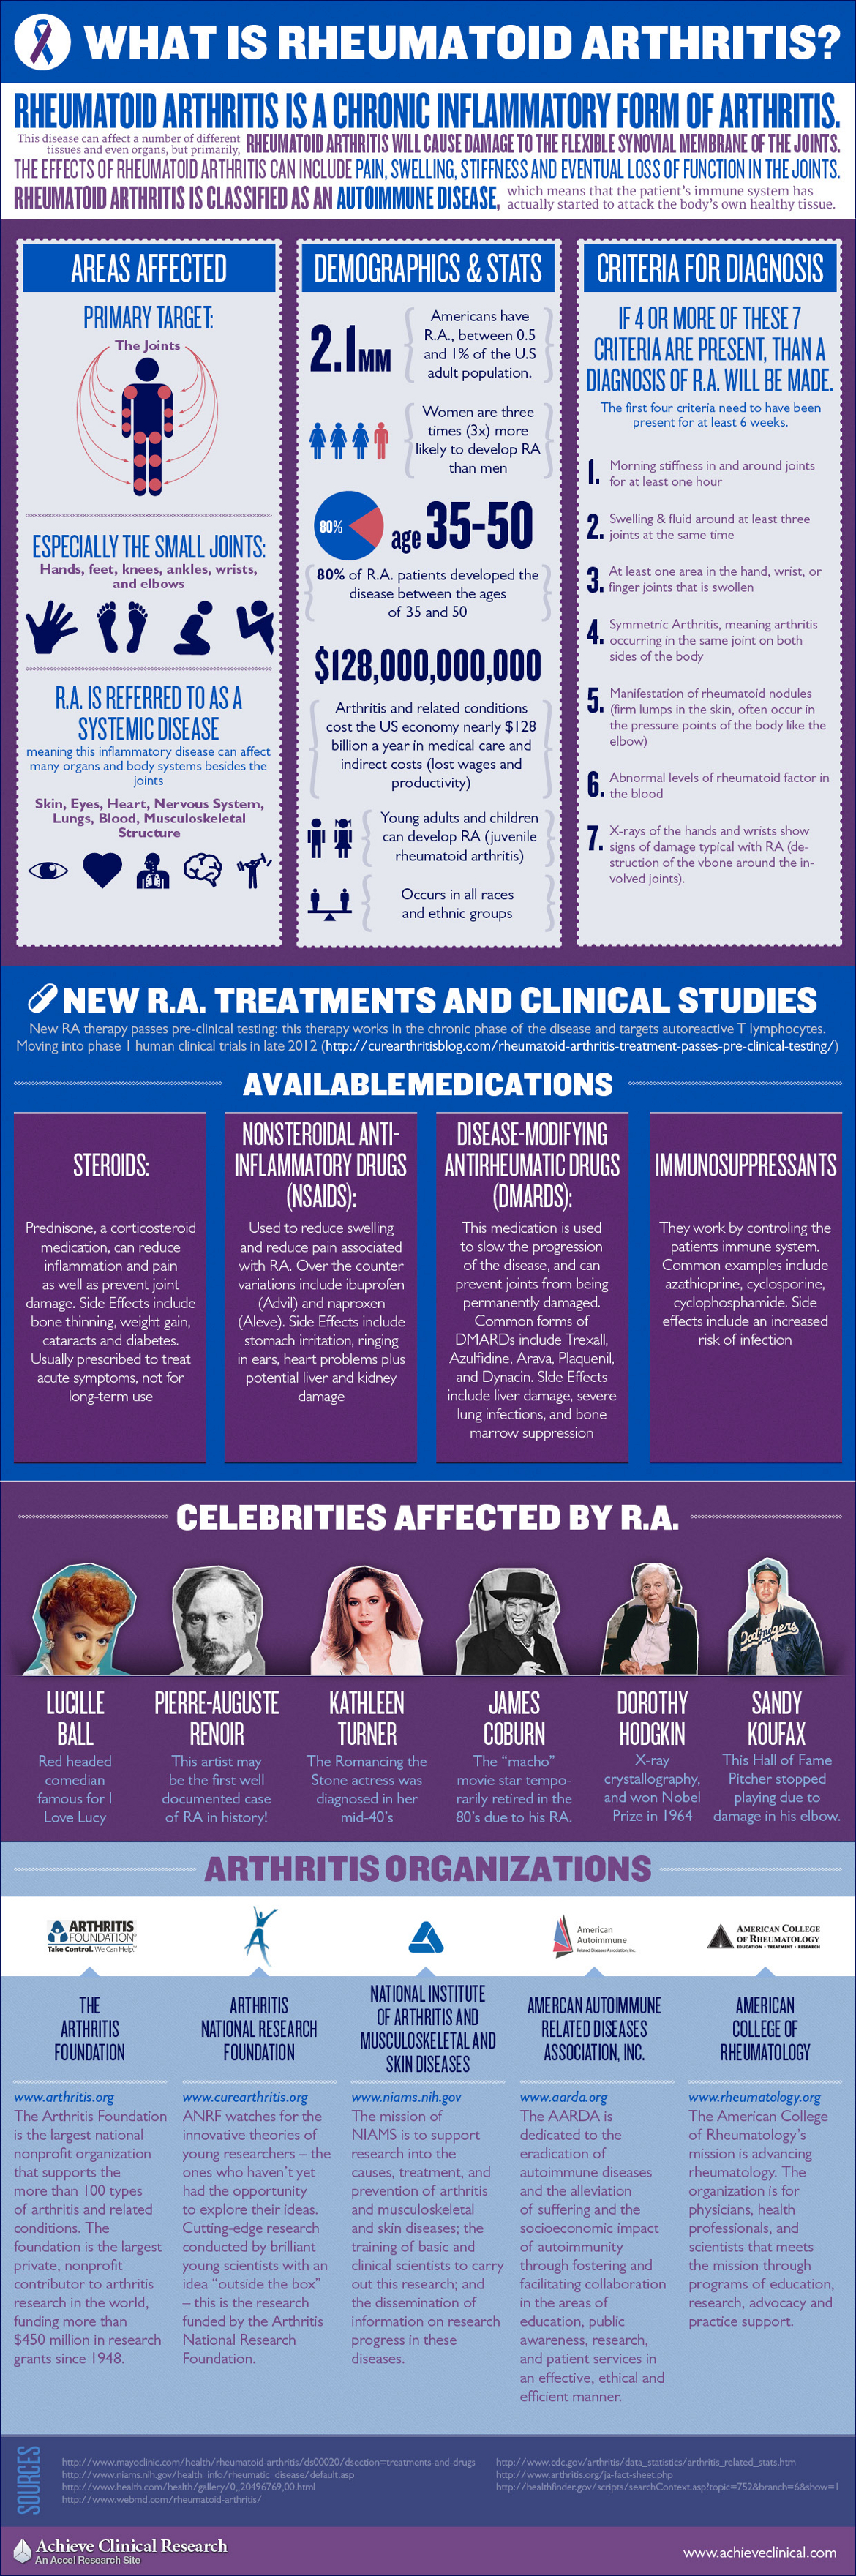 Famous People With Rheumatoid Arthritis HRFnd